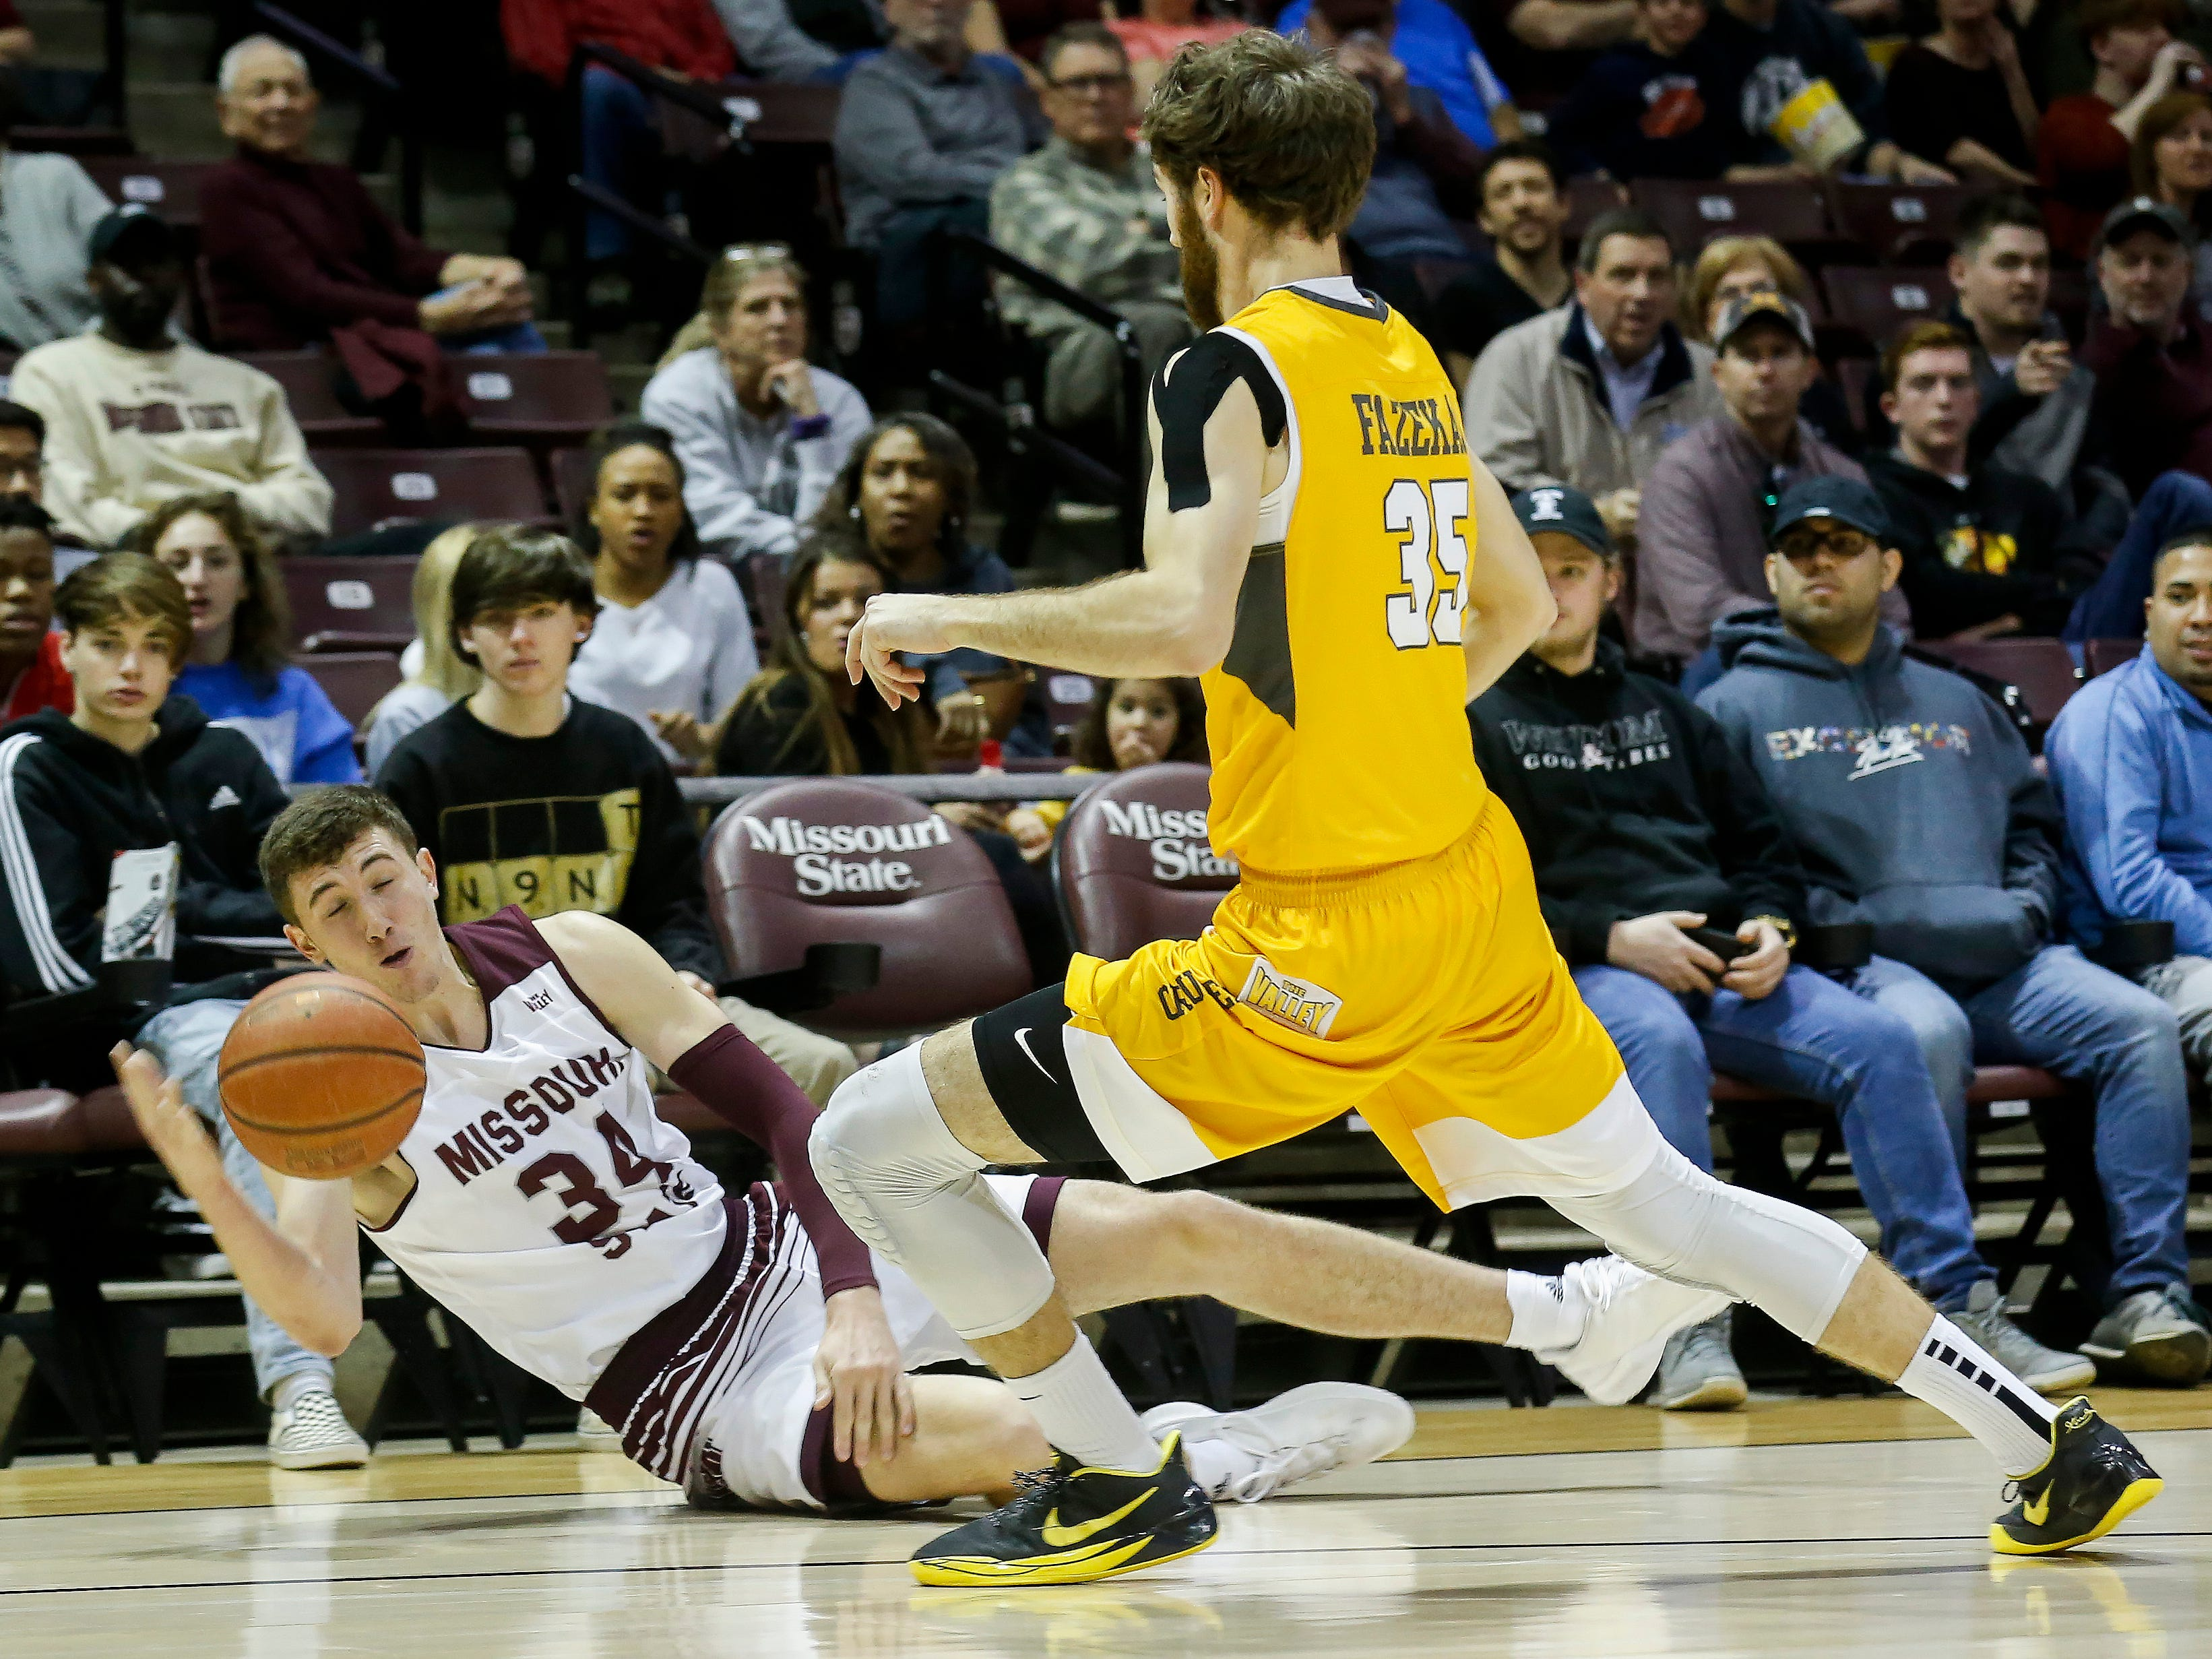 Jared Ridder, of Missouri State University, loses control of the ball during the Bears game against Valparaiso at JQH Arena on Saturday, Jan. 5, 2018.